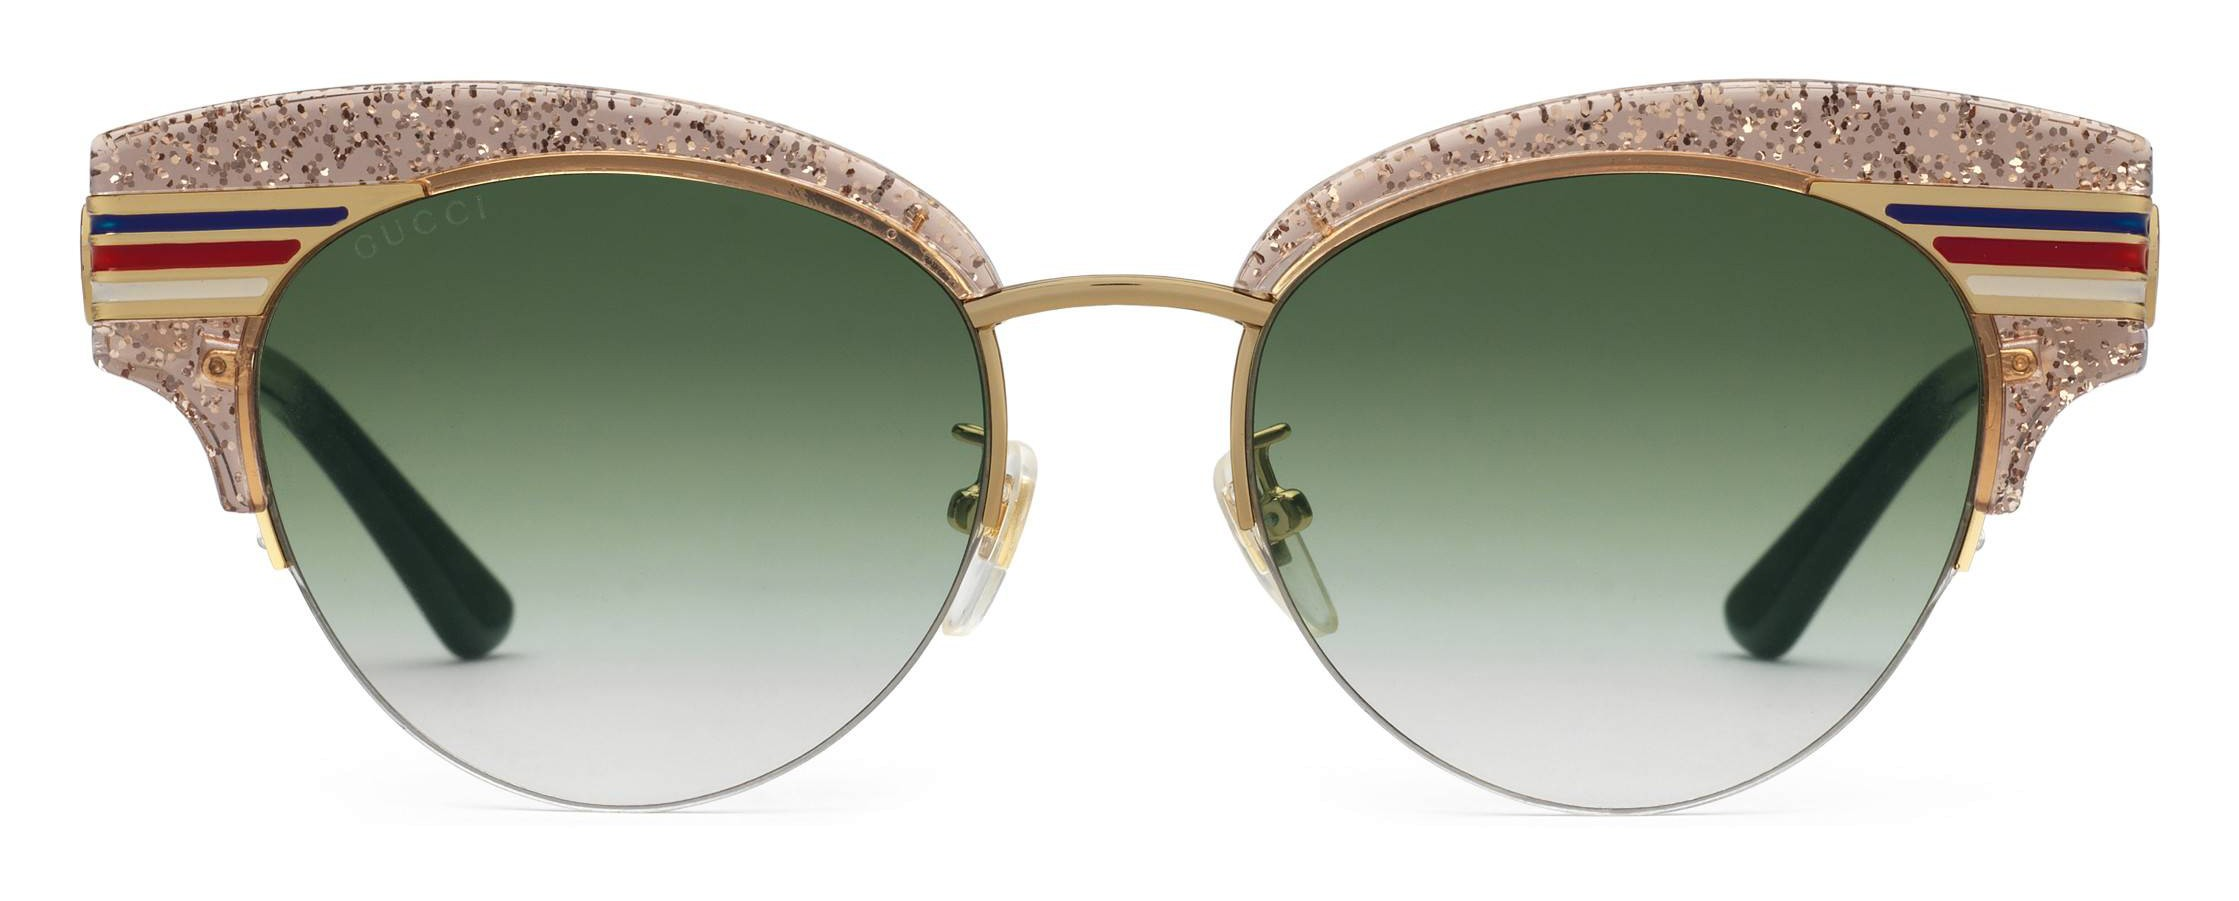 918e16fb7fd Gucci - Cat Eye Glitter Acetate Sunglasses - Beige Glitter Acetate and Gold  Metal - Gucci Eyewear - Avvenice